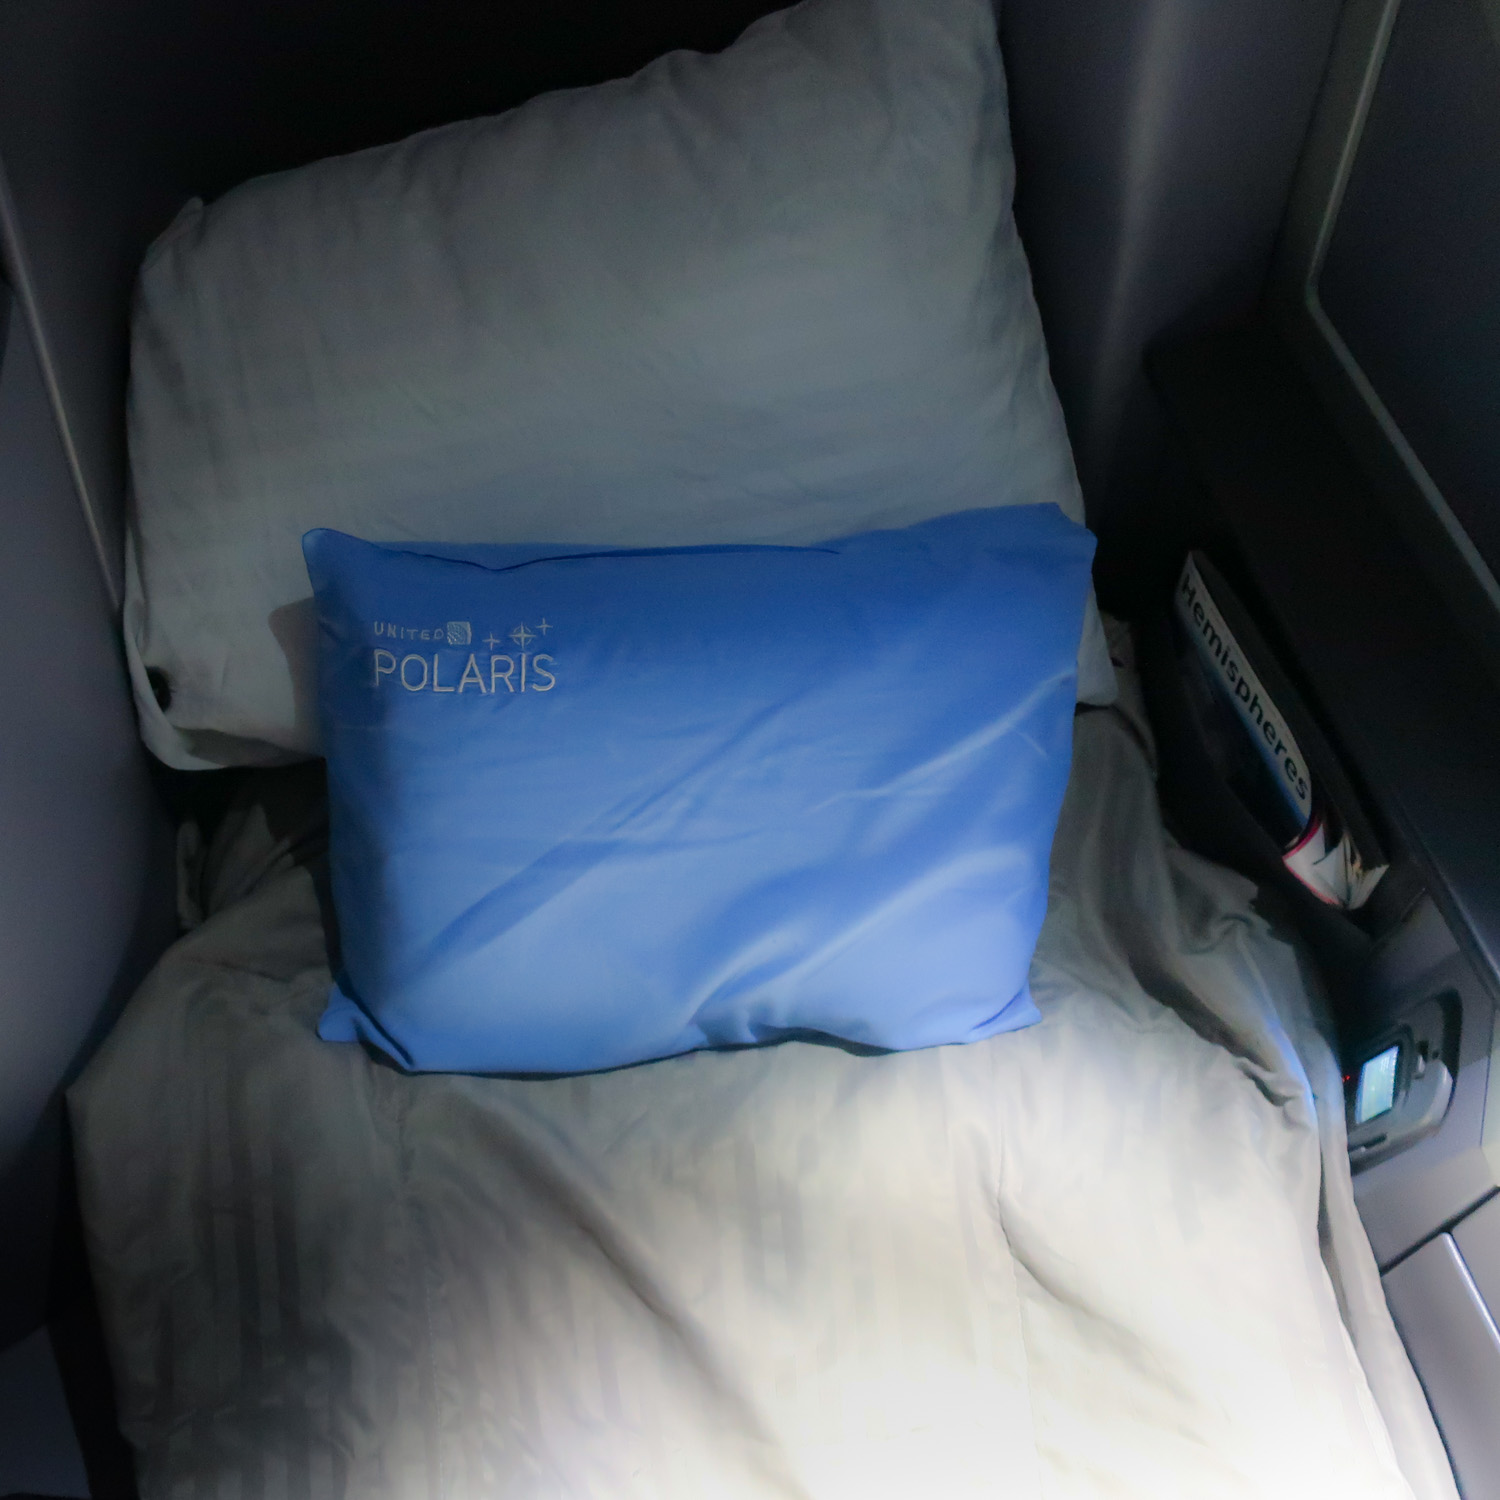 Bed Mode - United Polaris Business Class - 787  Photo: Calvin Wood